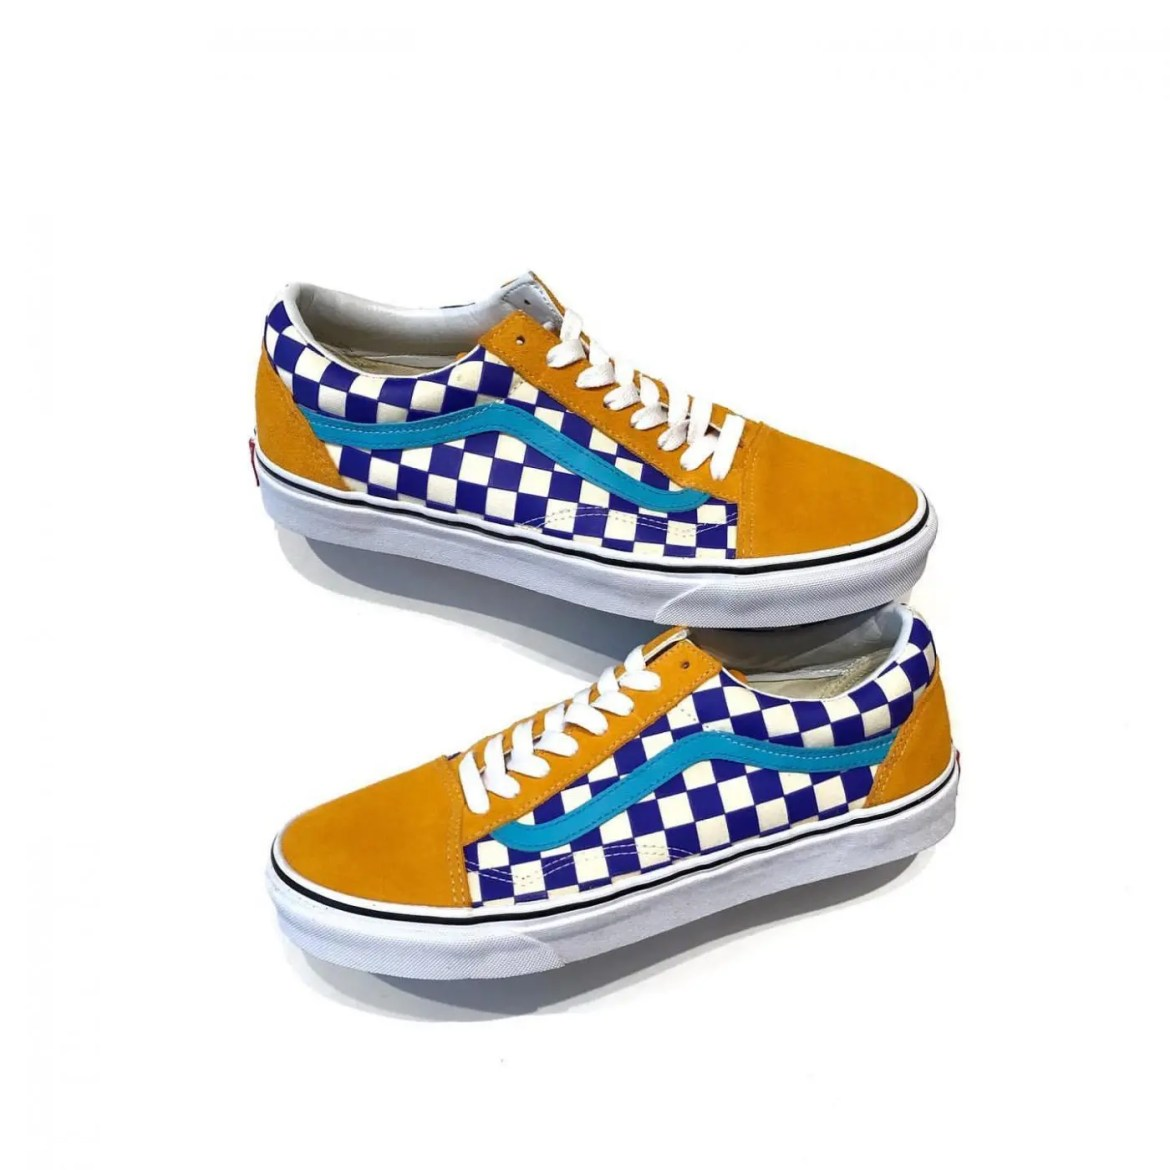 vans-thermochromic-pack-05